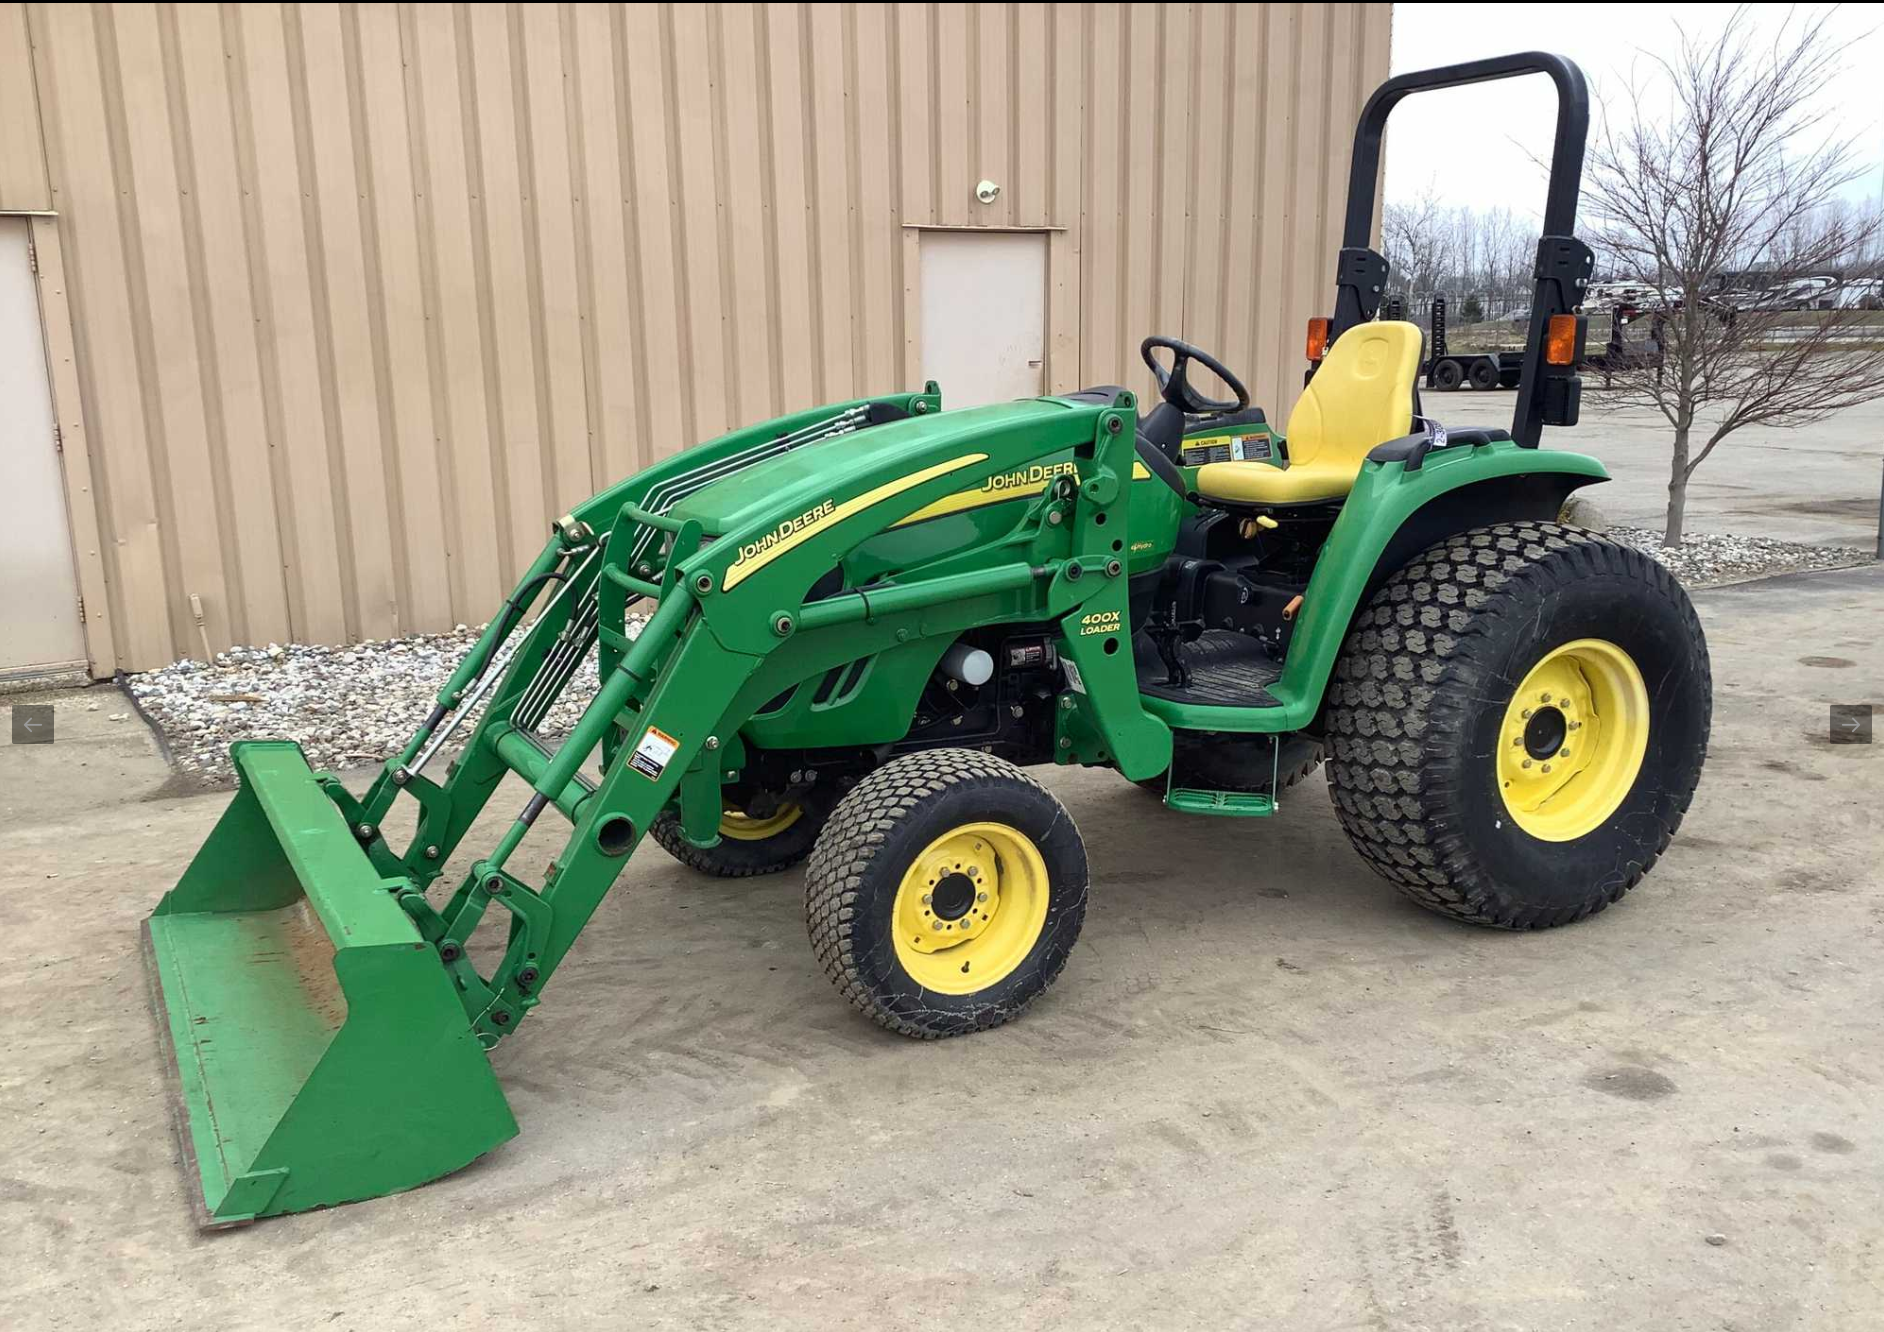 John Deere 4720 Compact Utility Tractor with John Deere 400X Loader Attachment